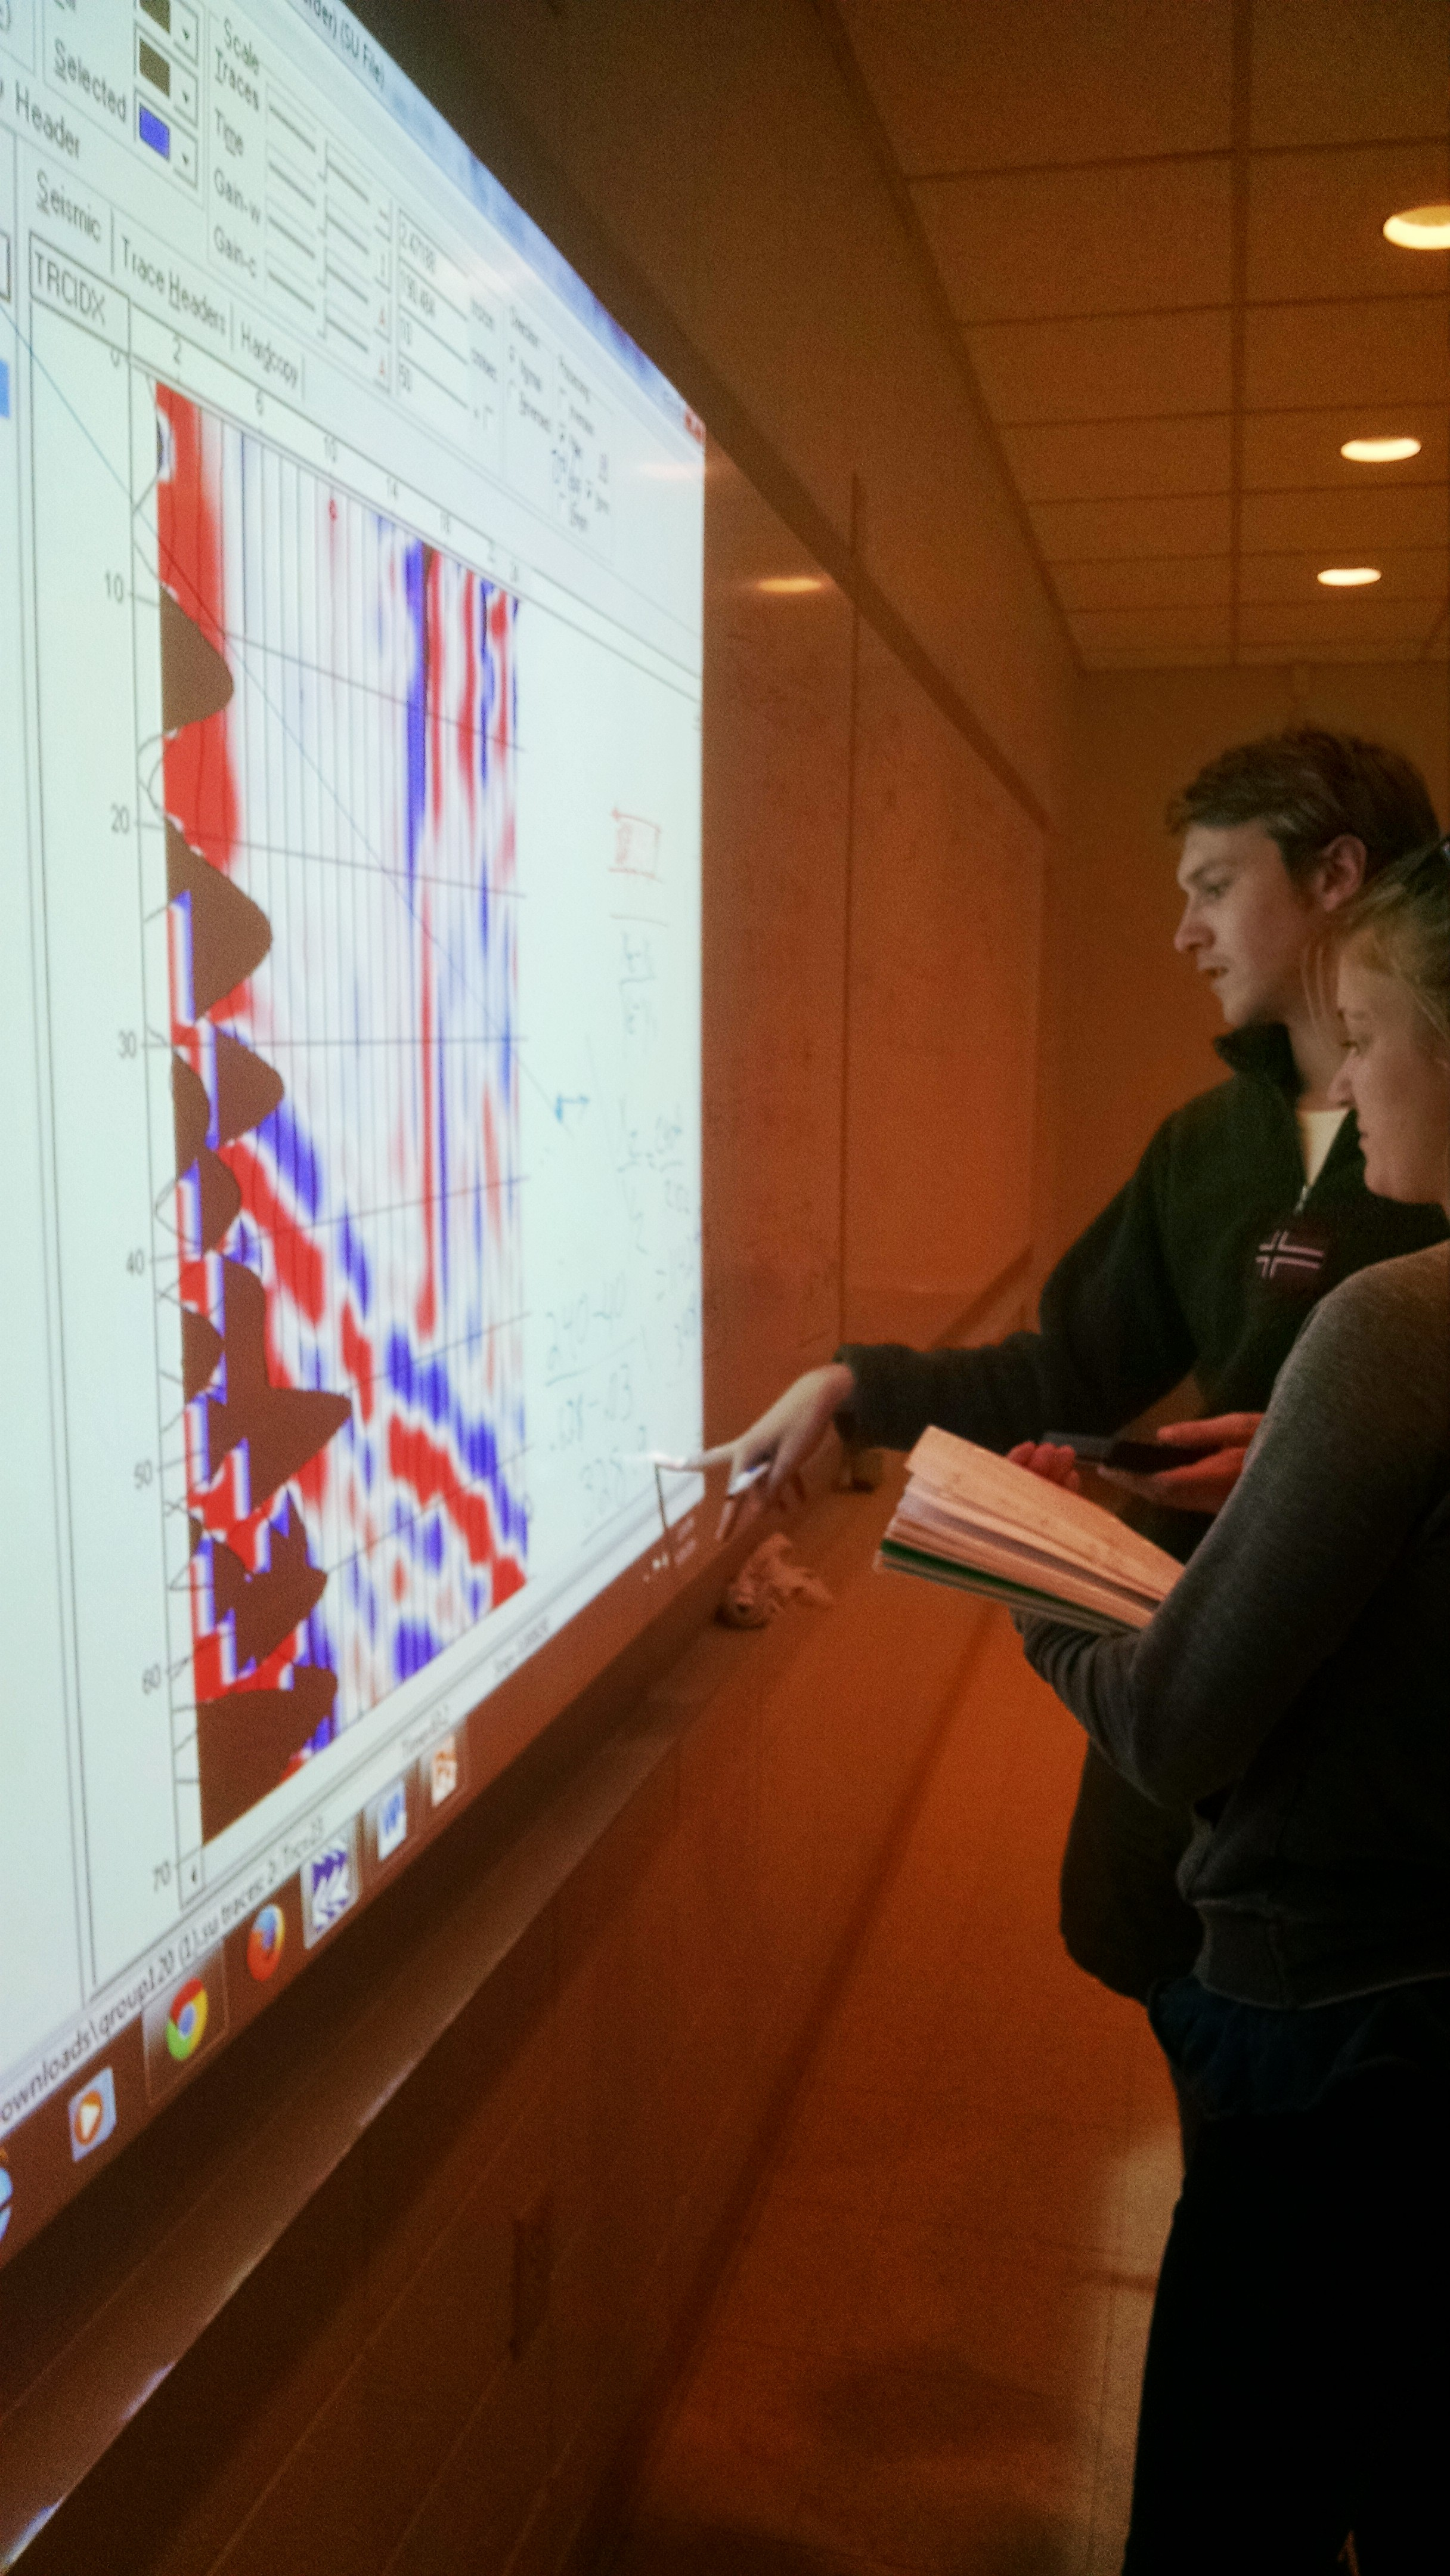 Geophysics students analyze seismic refraction data